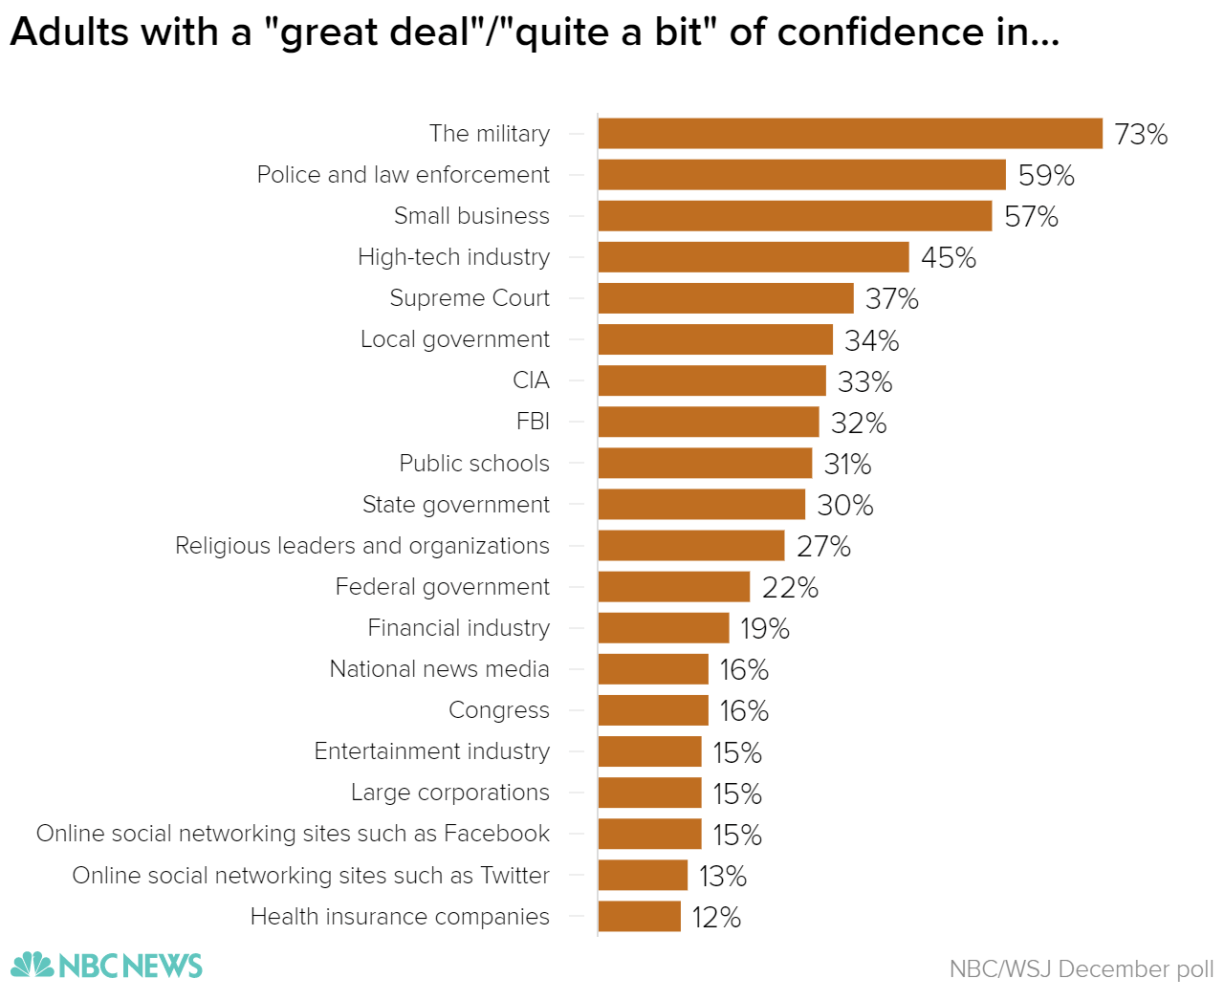 adults_with_a_-great_deal-quite_a_bit-_of_confidence_in-_confidence_chartbuilder_bc7e3365b2a44d31d0d27e7f6584ce81.nbcnews-ux-2880-1000.png